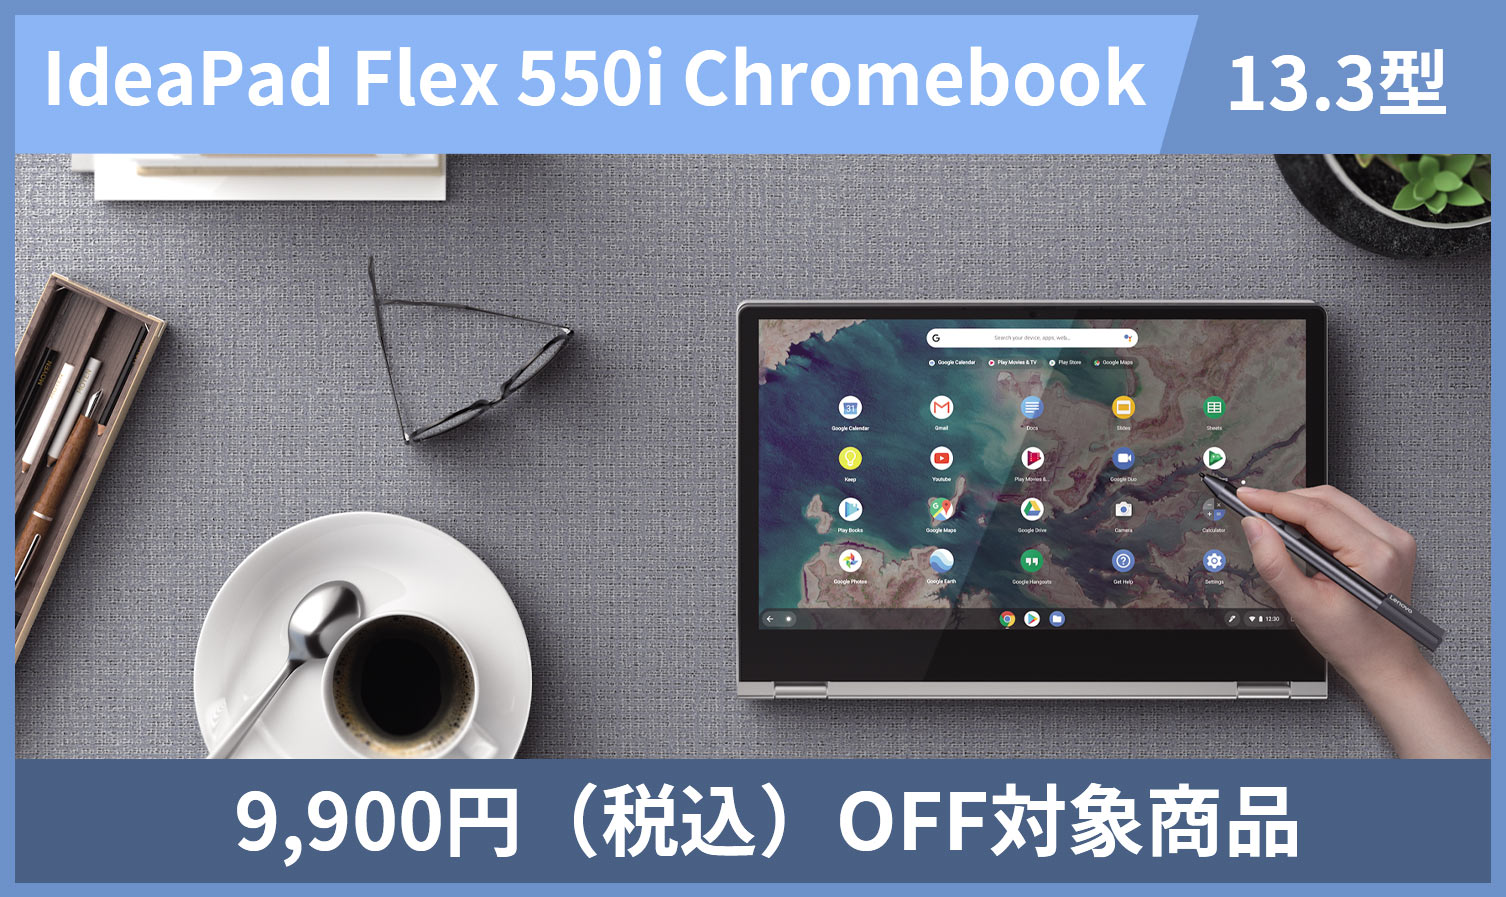 IdeaPad Flex550i Chromebook